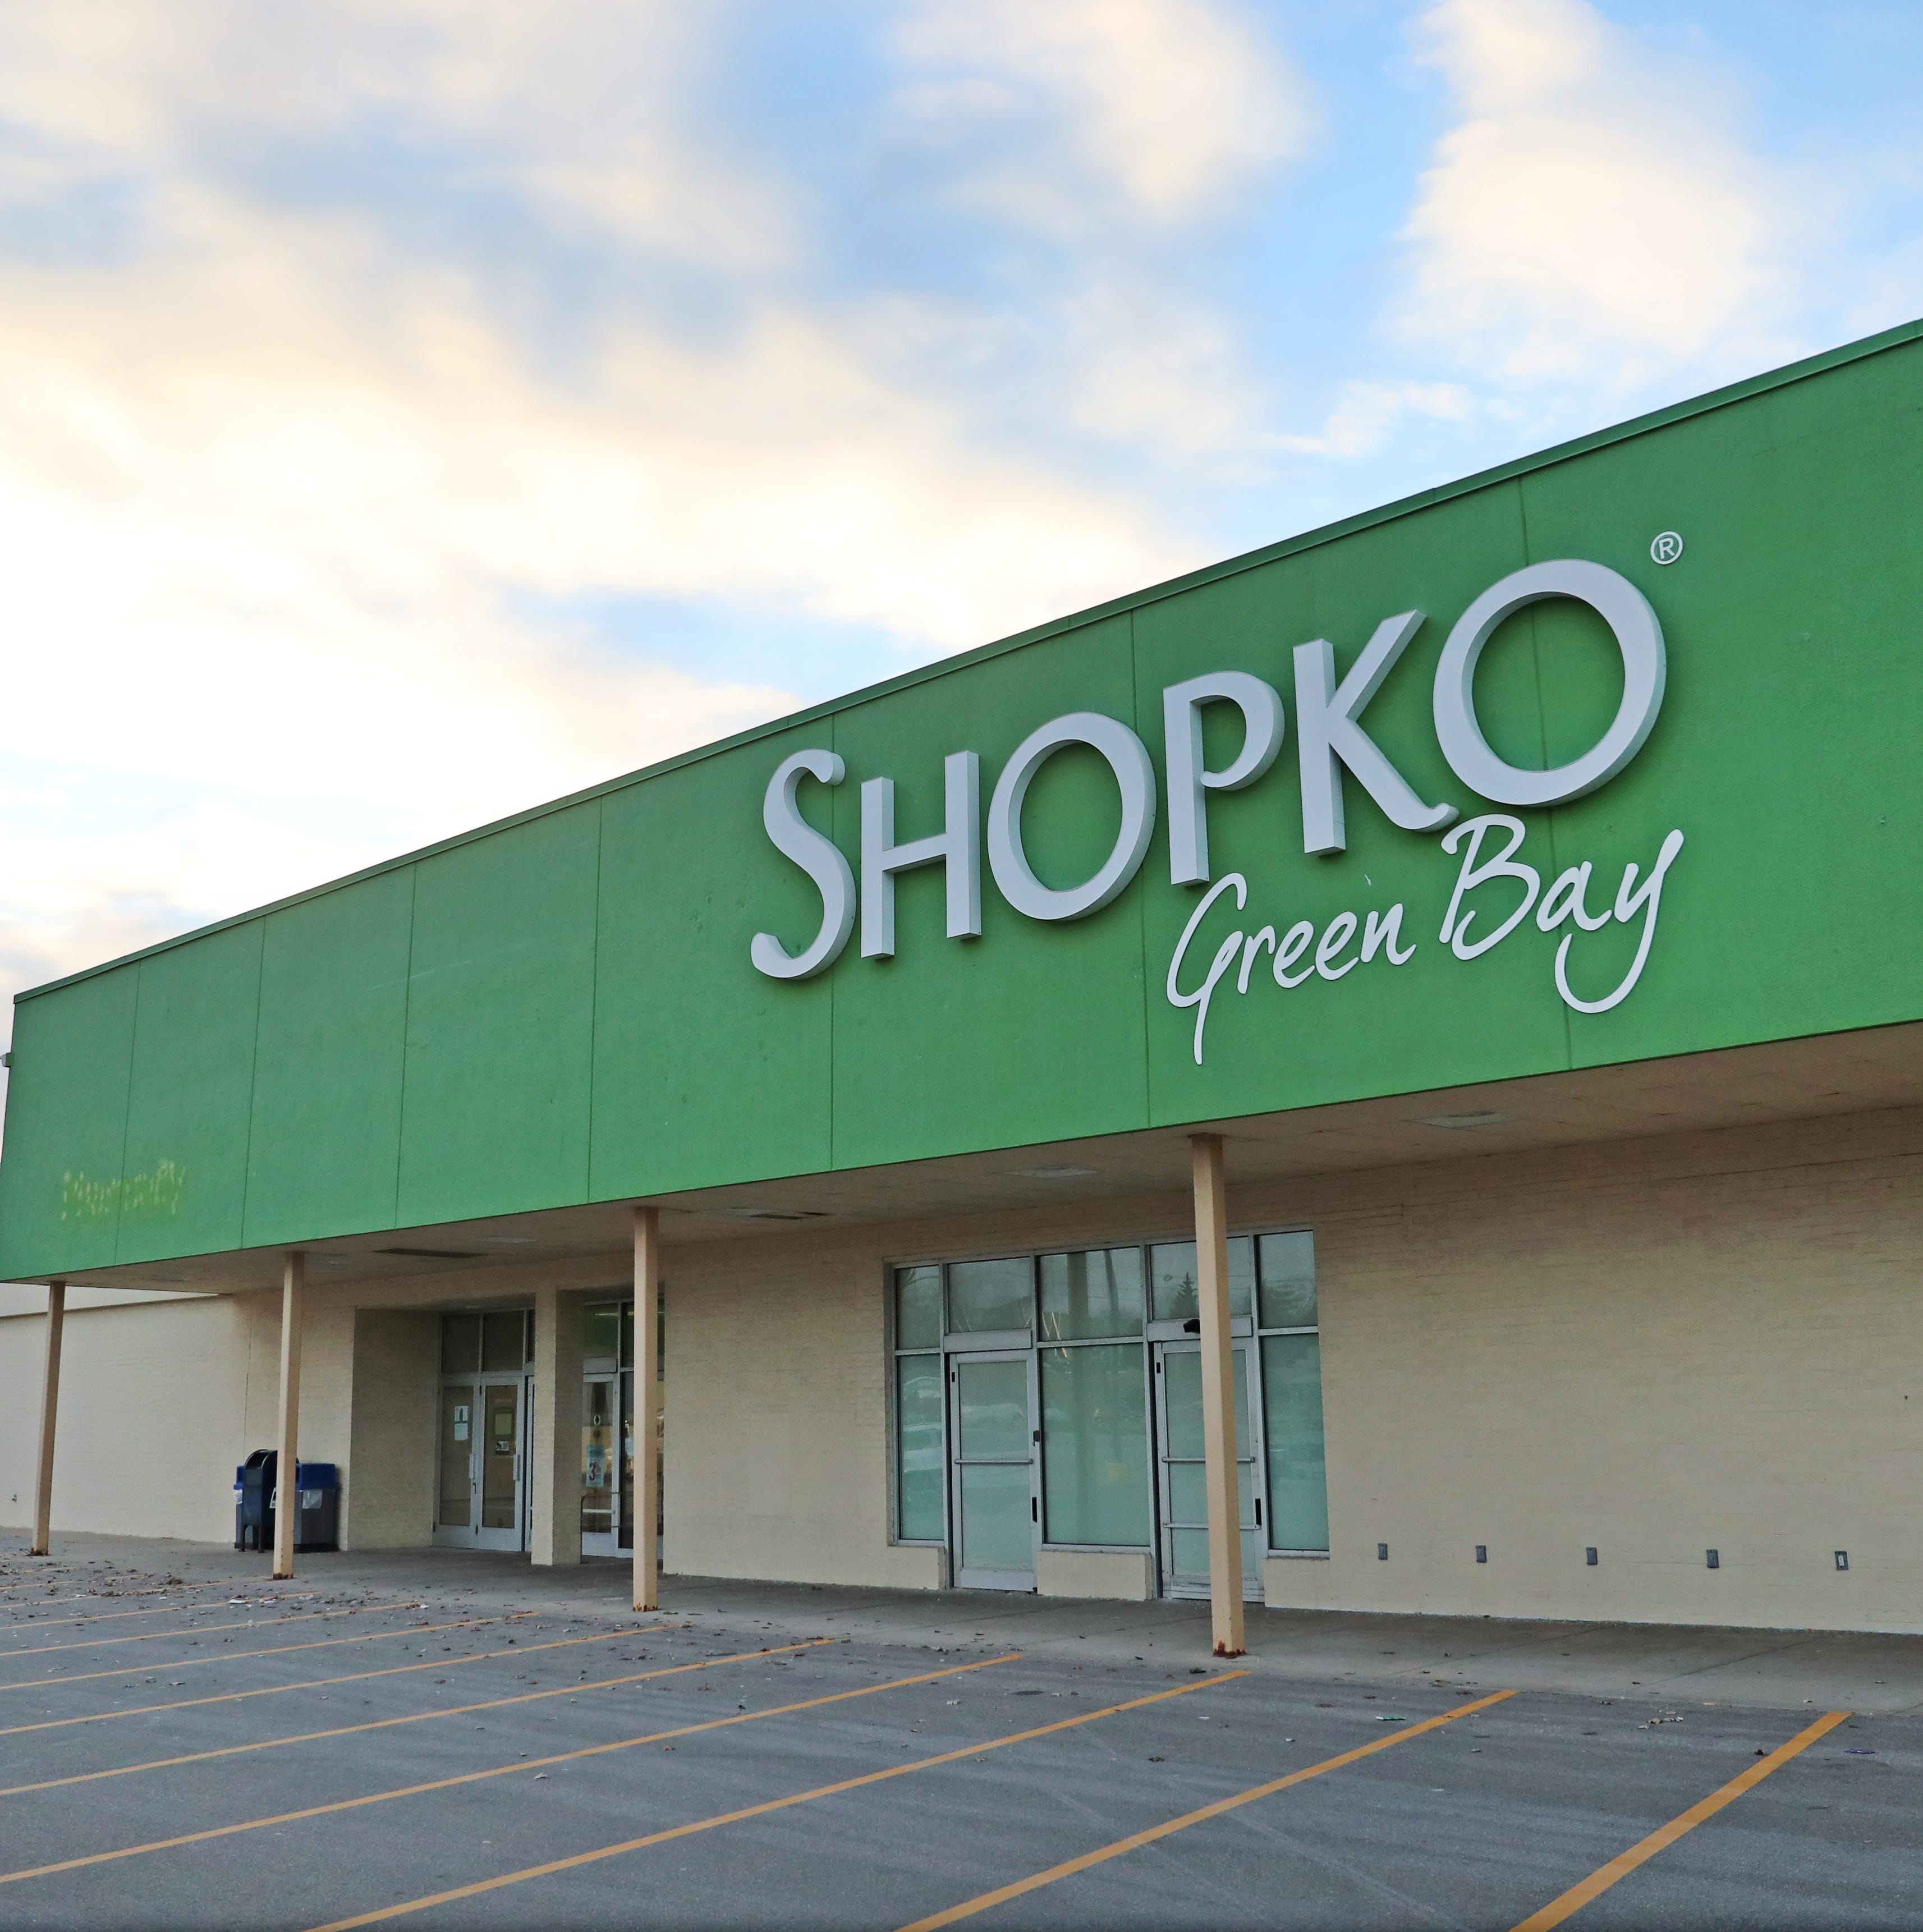 Shopko timeline of notable events, from 1961-2019